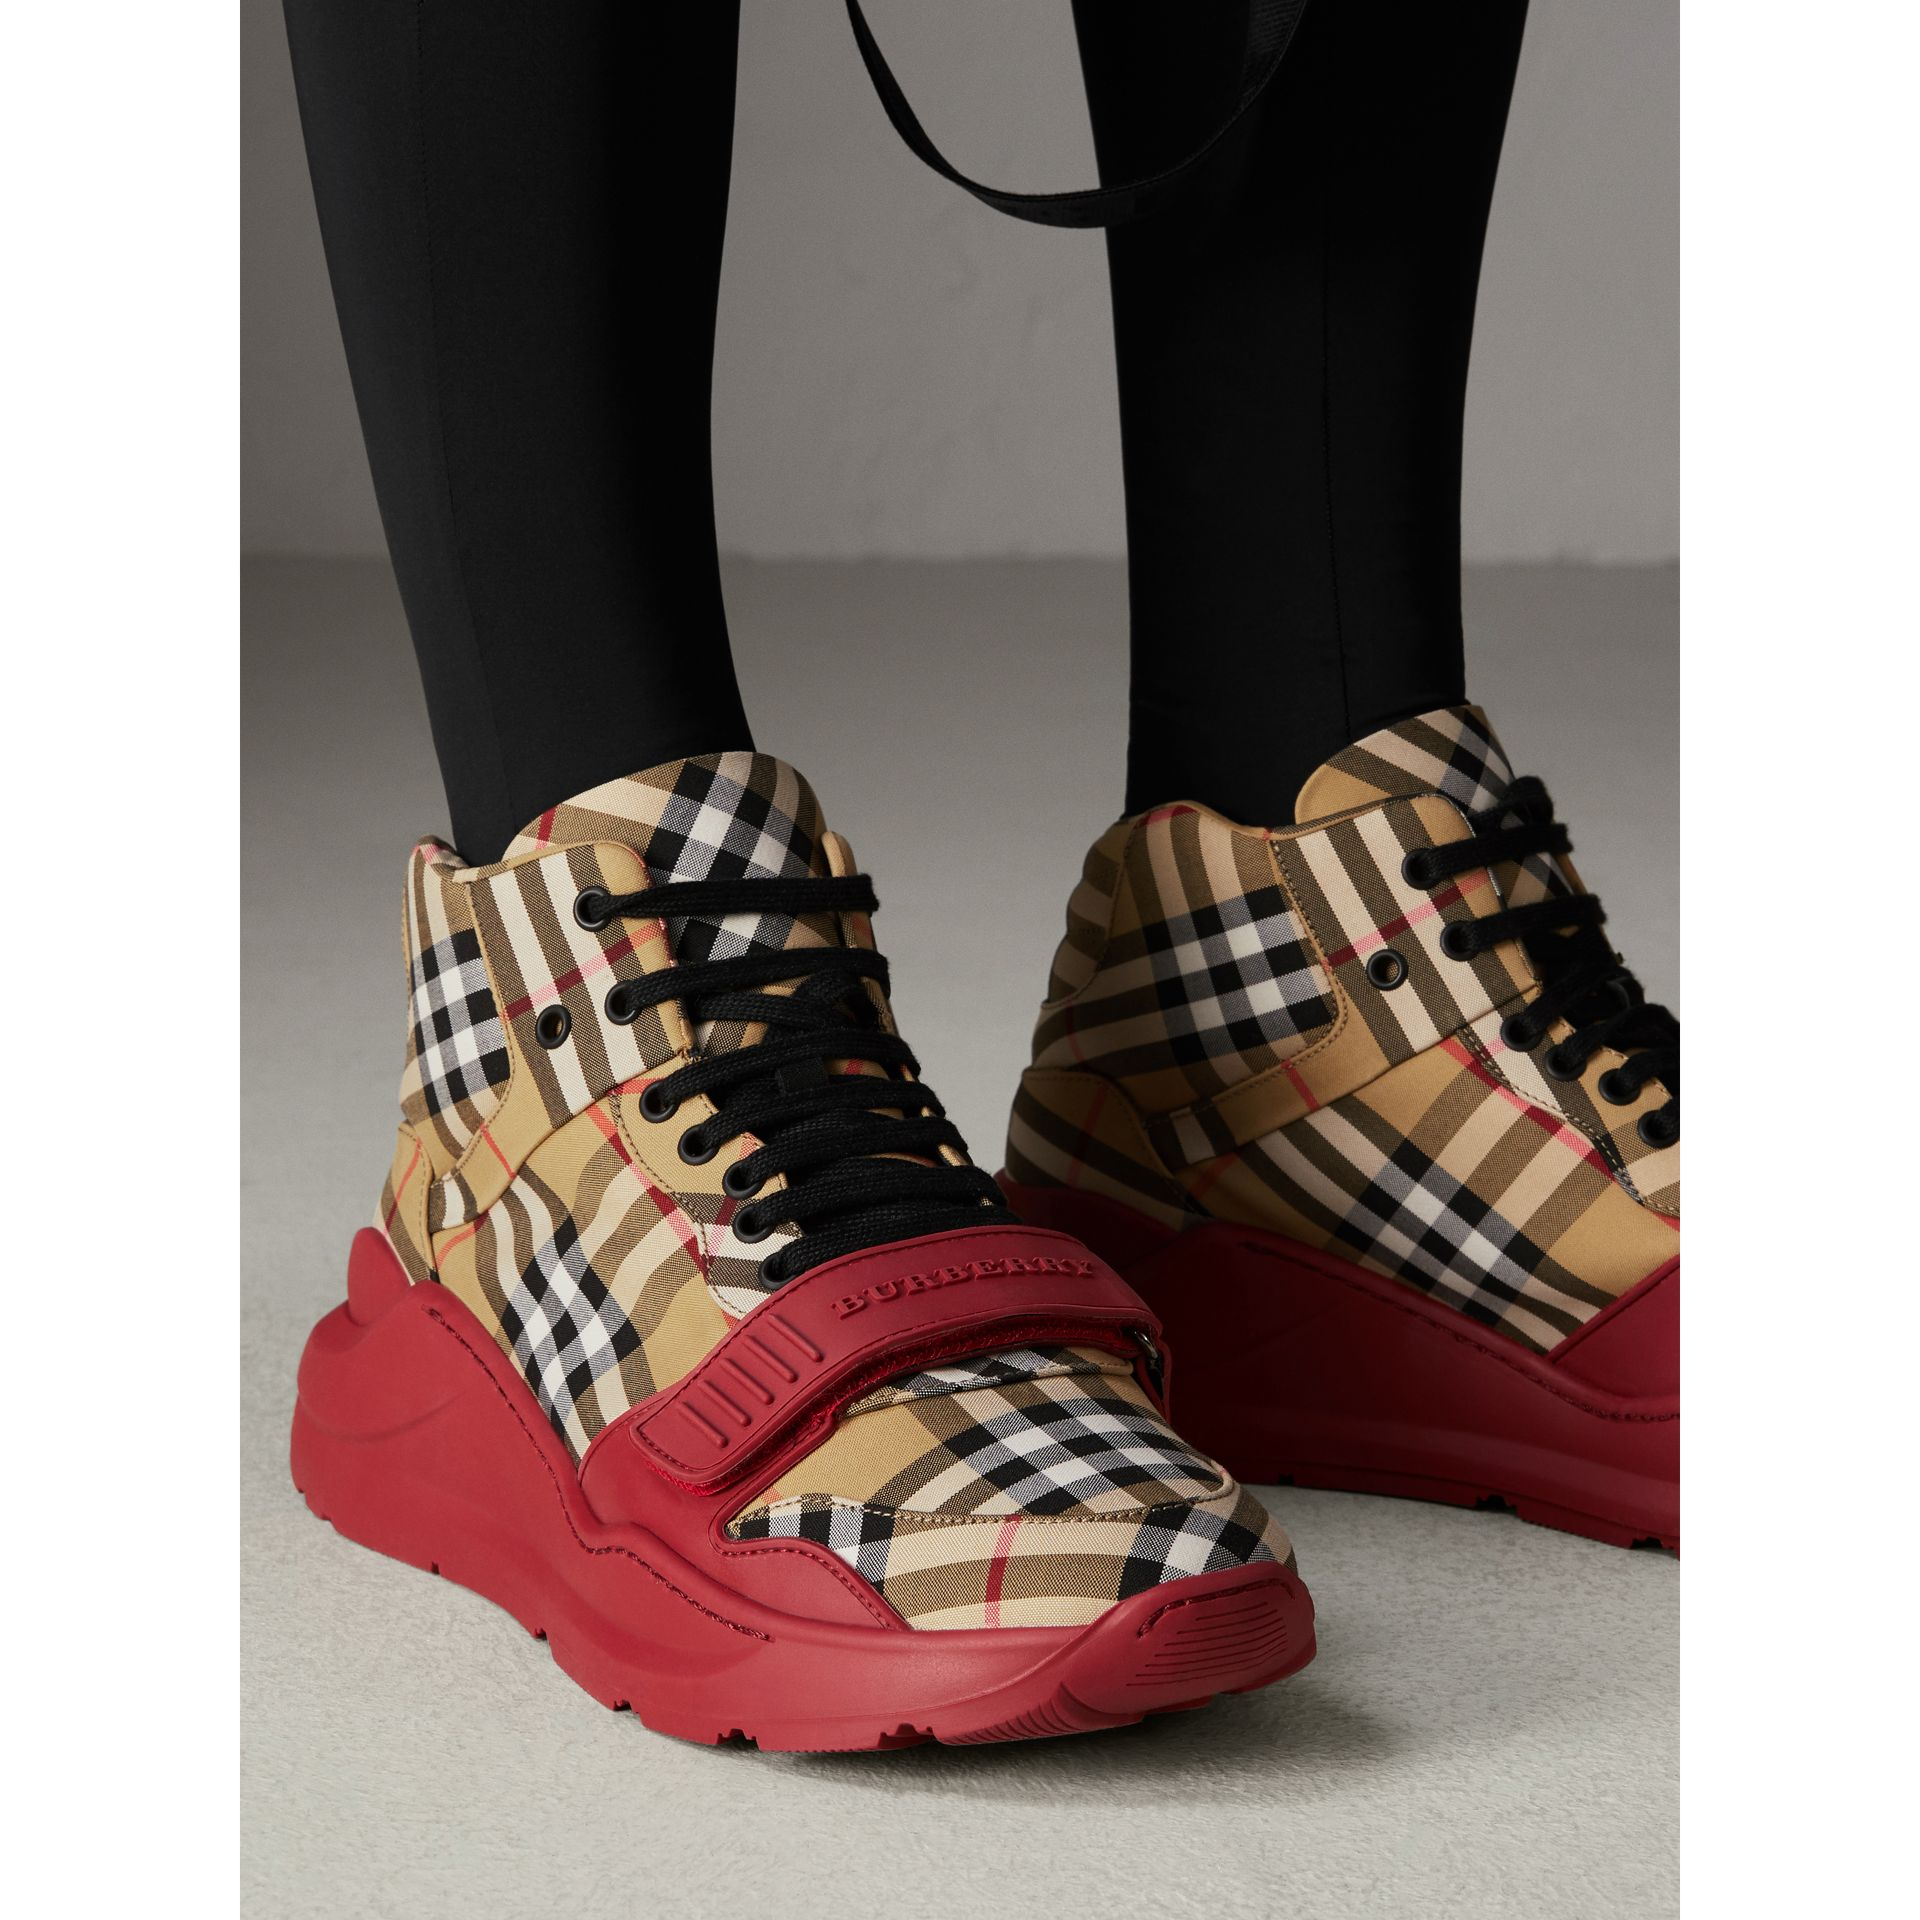 burberry vintage check high top sneaker